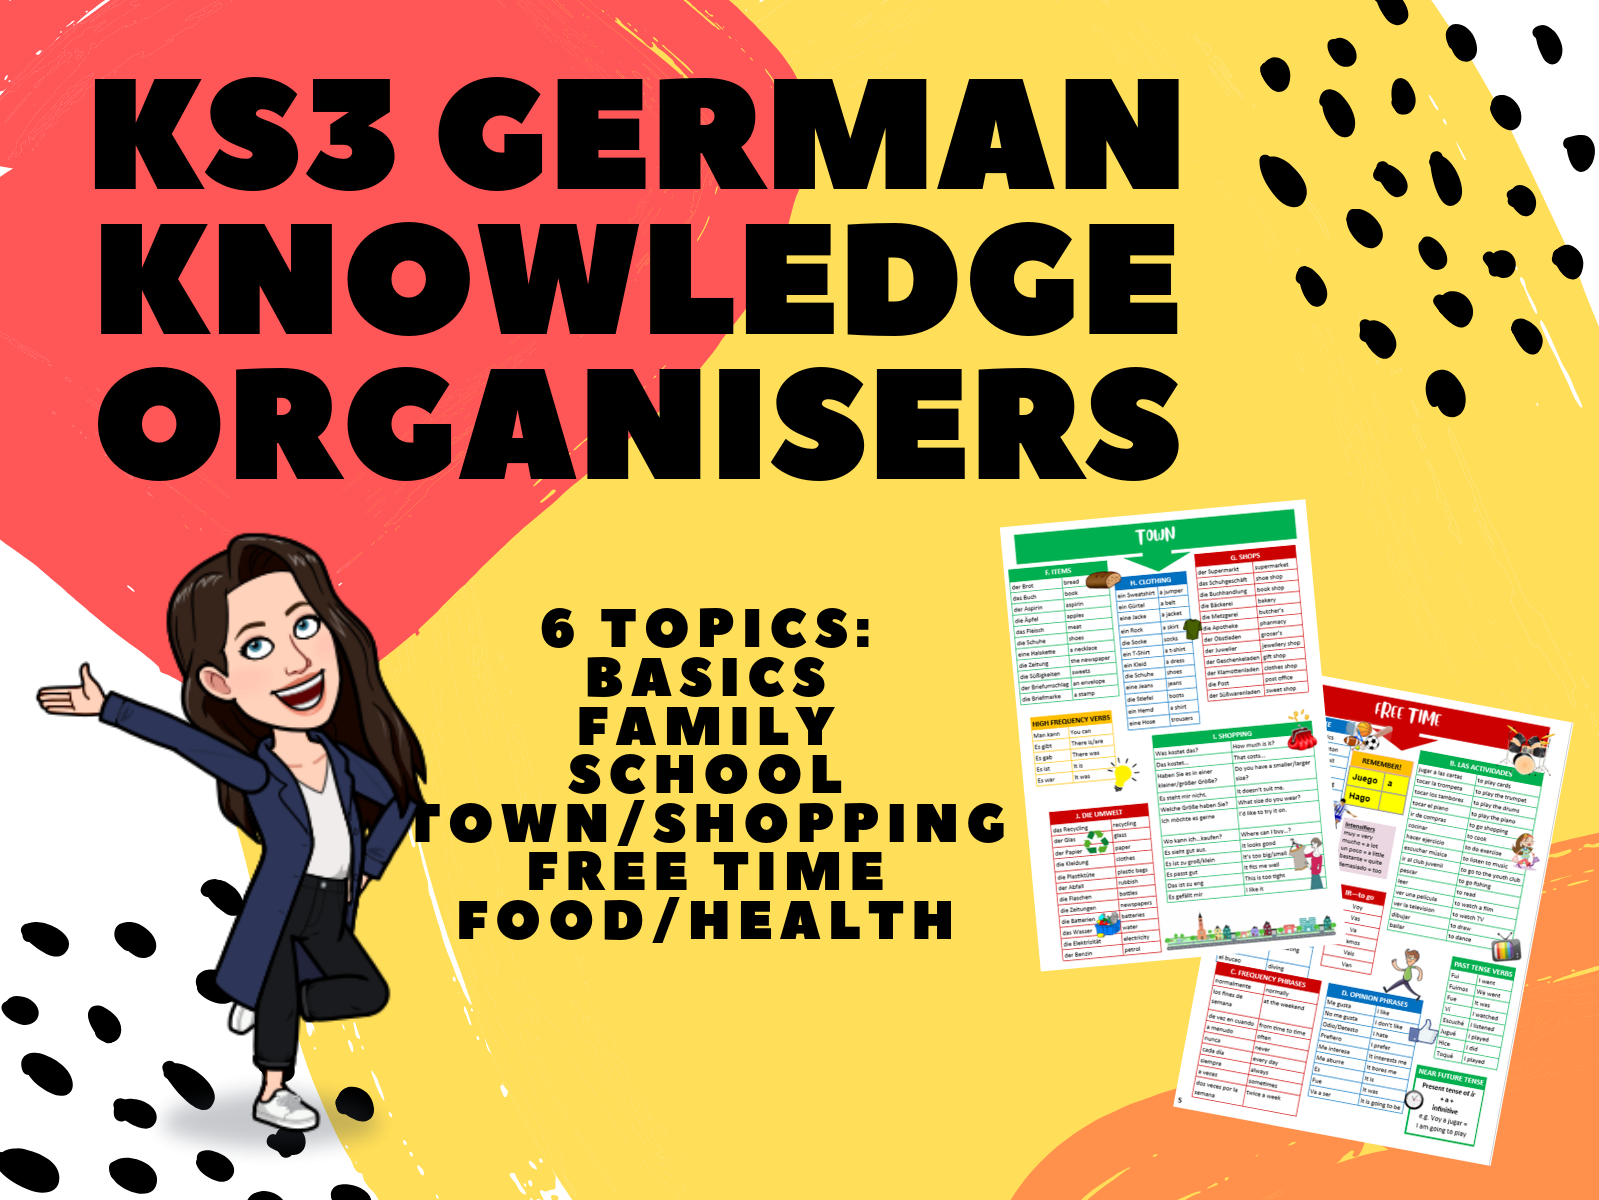 KS3 German Knowledge Organisers 6-Topic Bundle